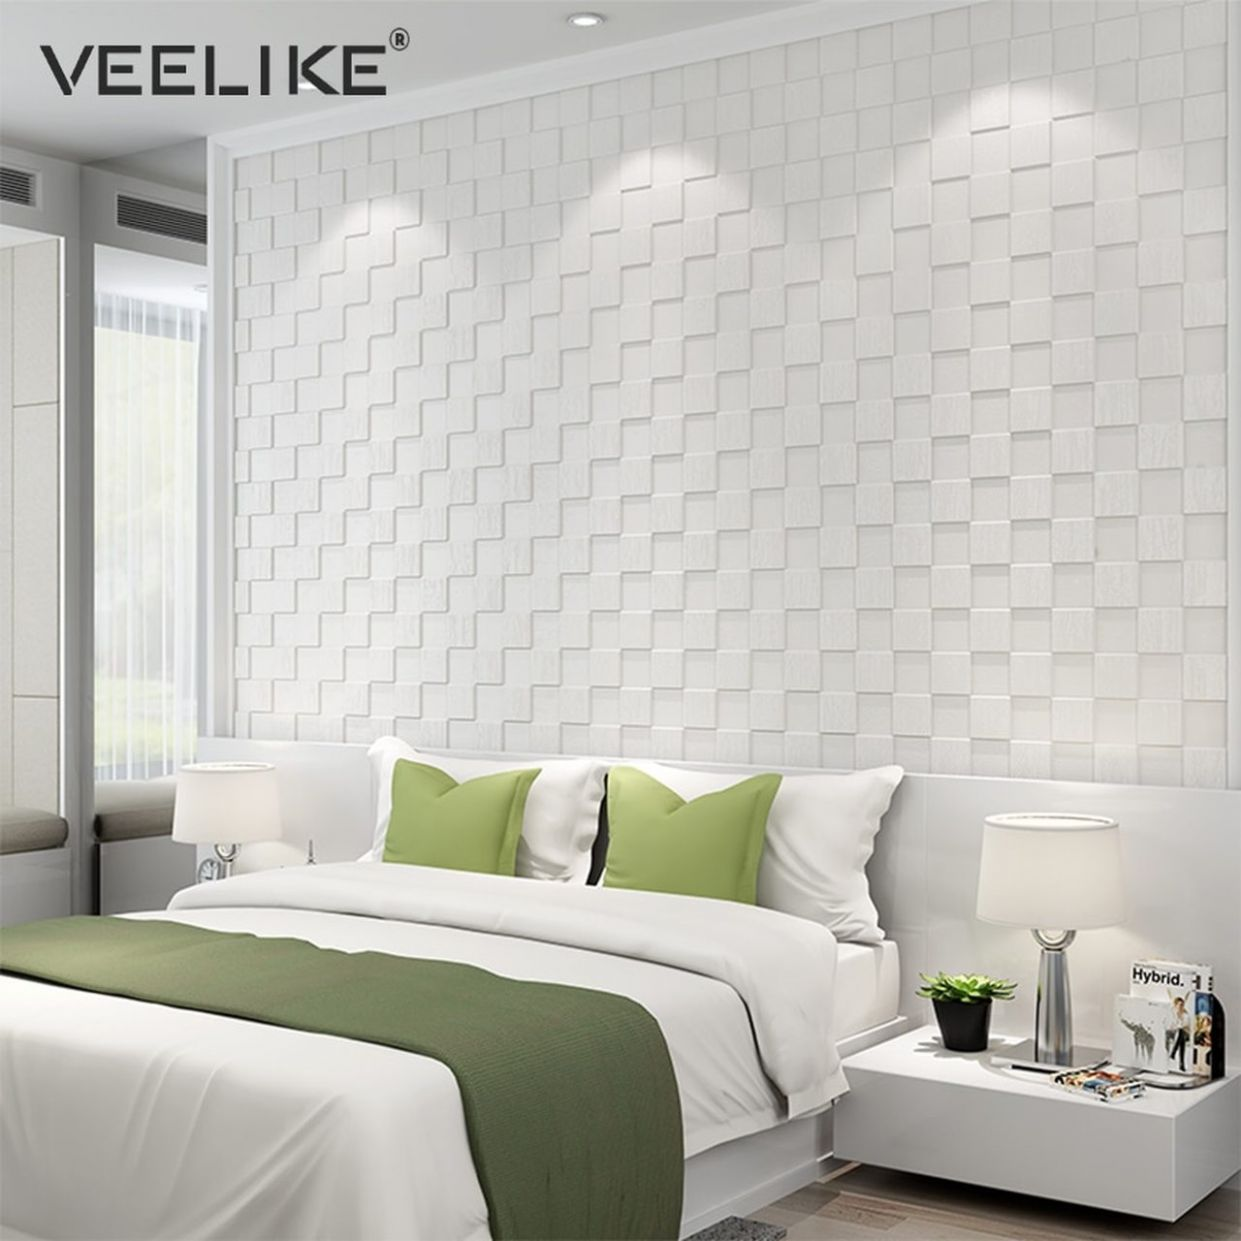 12PCS PE Foam 12D Wall Stickers Safety Home Decor Wallpaper DIY Wall Decor  Mosaic Panels Living Room Bedroom Decorative Wall Paper